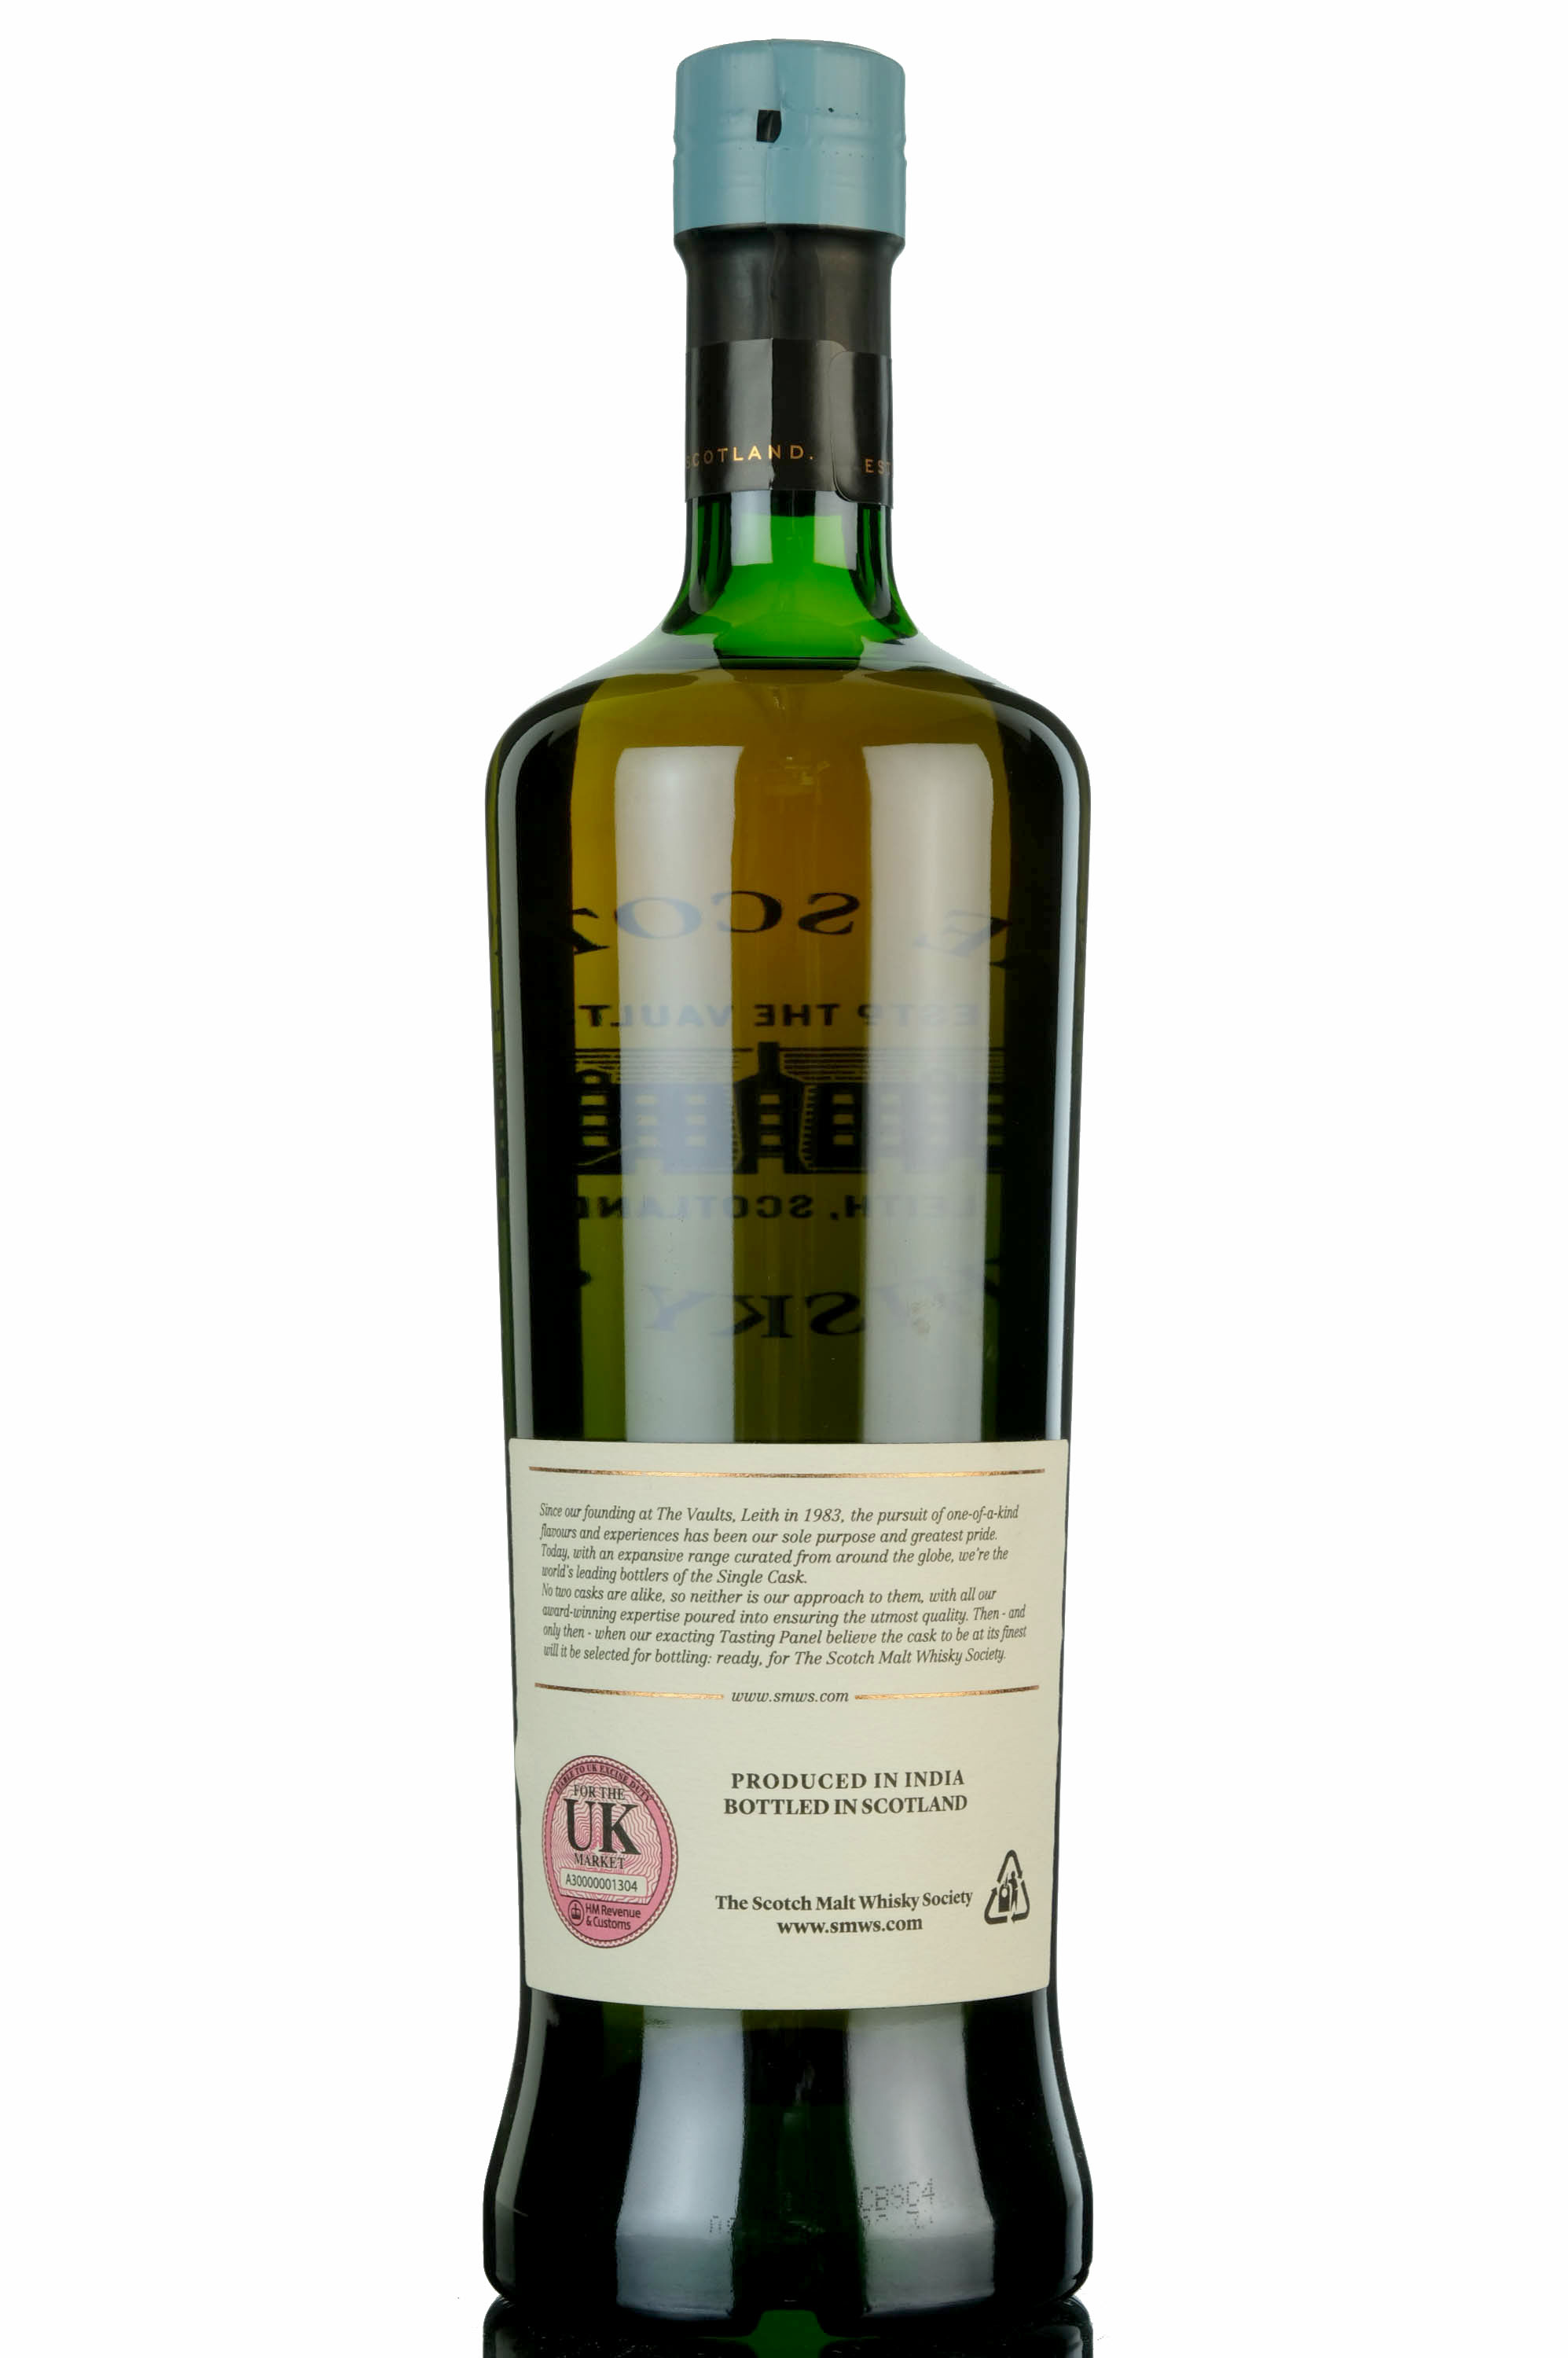 paul john 2010 - 6 year old - smws 134.2 - lip-smacking and cockle-warming